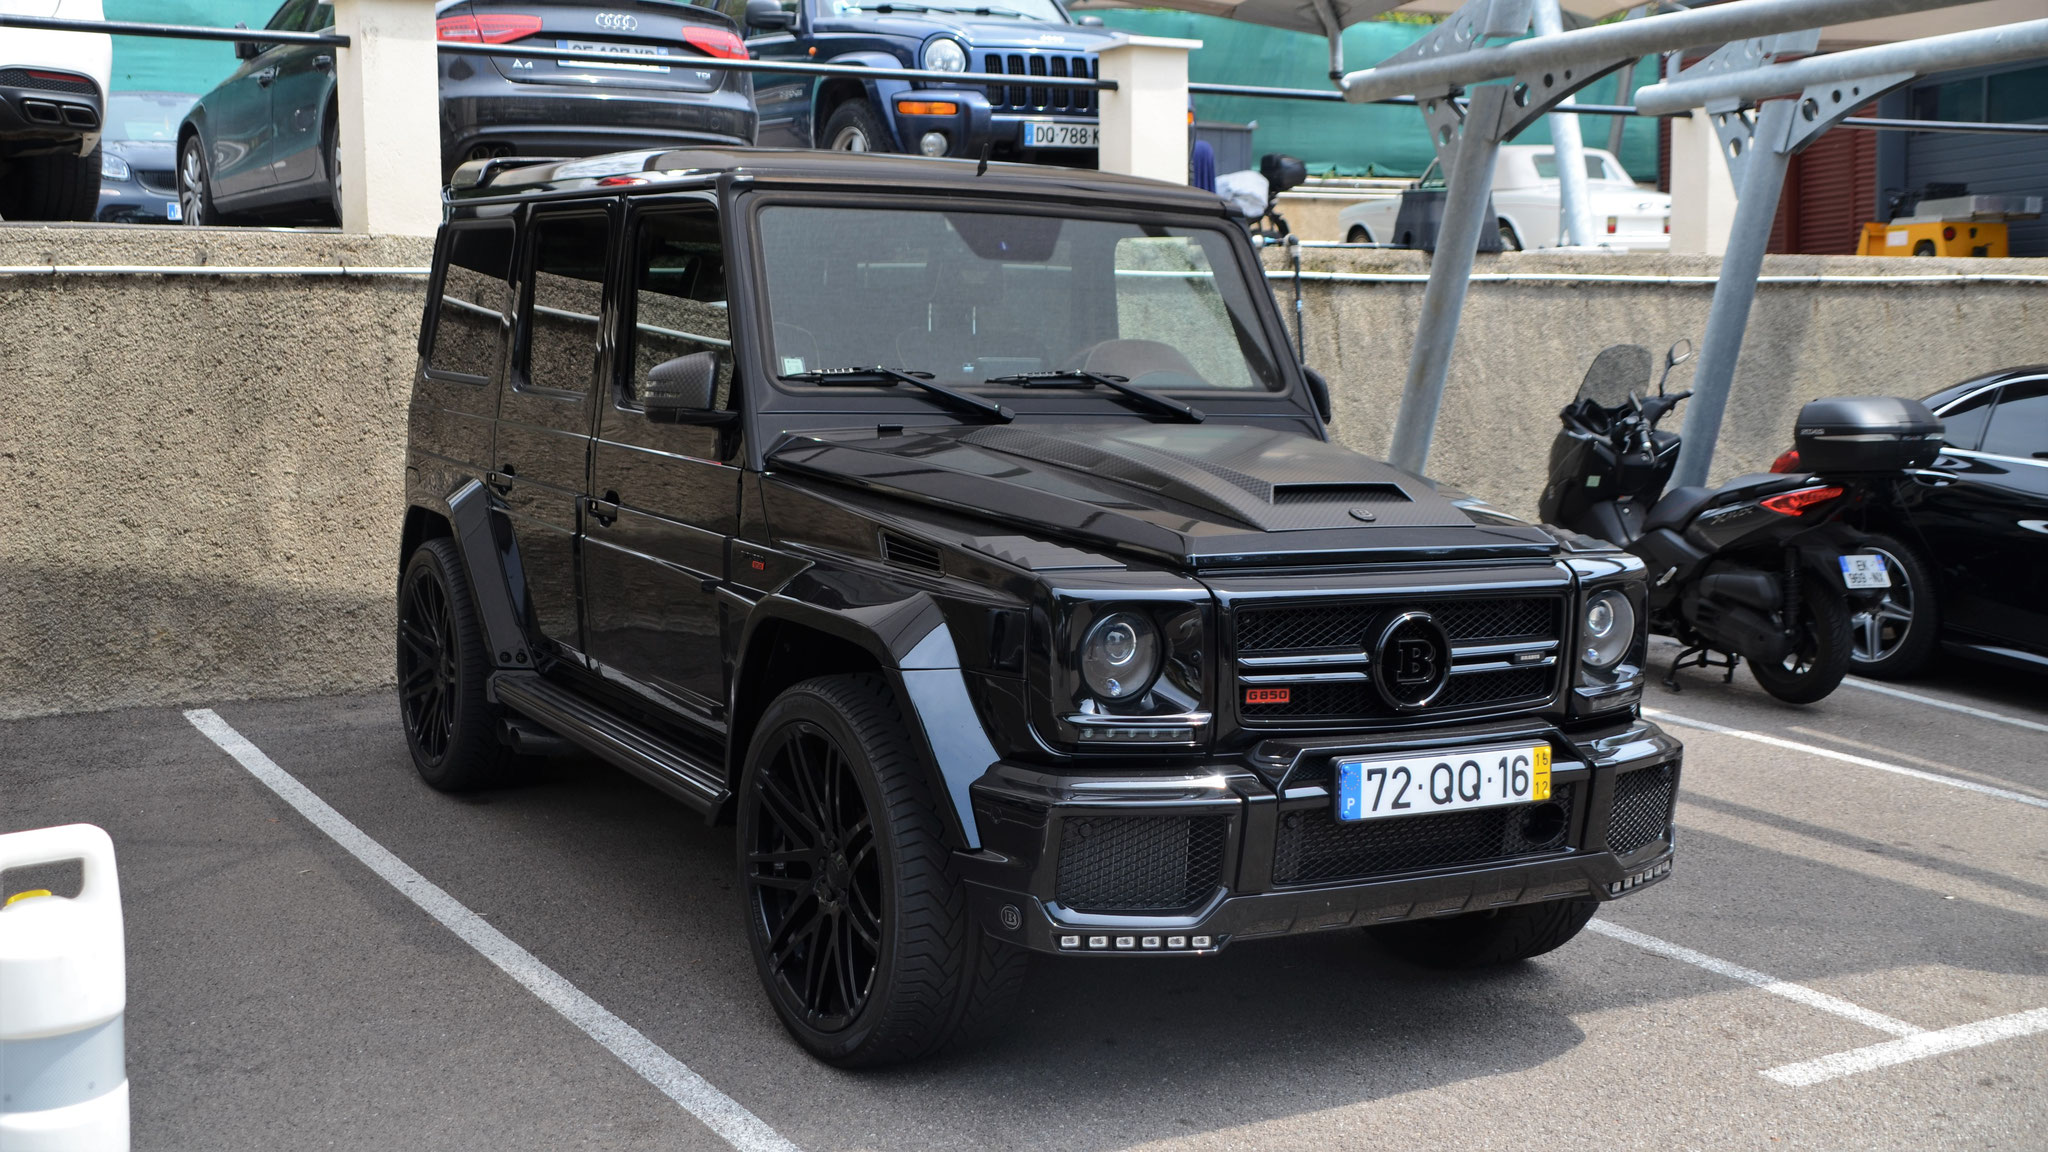 Brabus Carspotting Car graphy in Munich